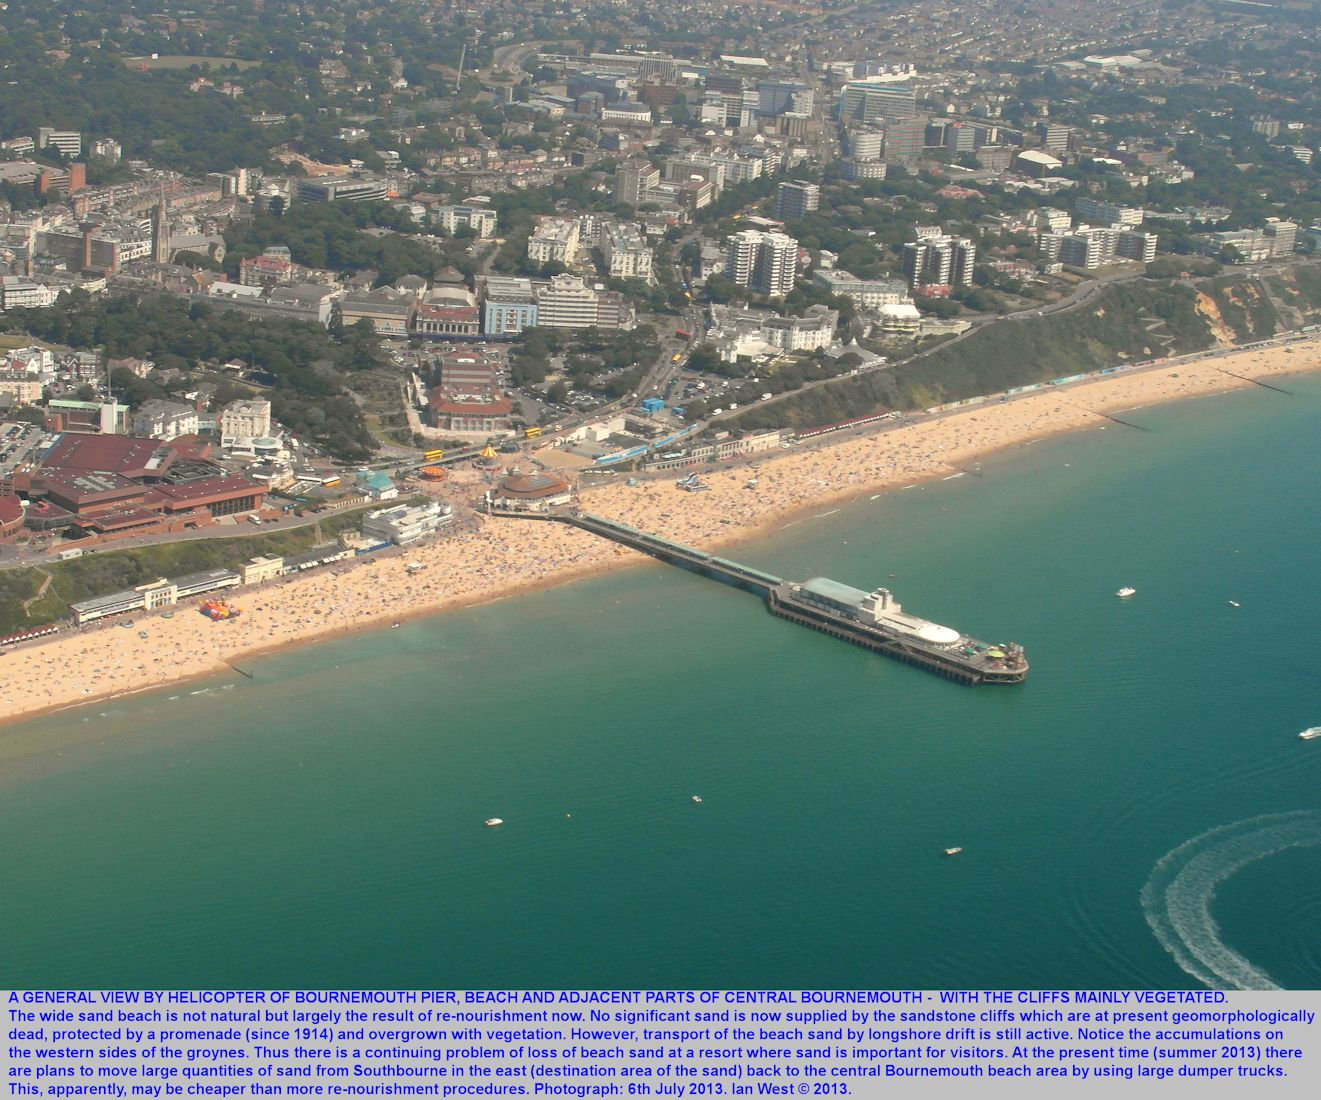 A general view of Bournemouth Pier, Bournemouth, Dorset, and the re-nourished sandy beach, as seen from a helicopter, 6th July 2013